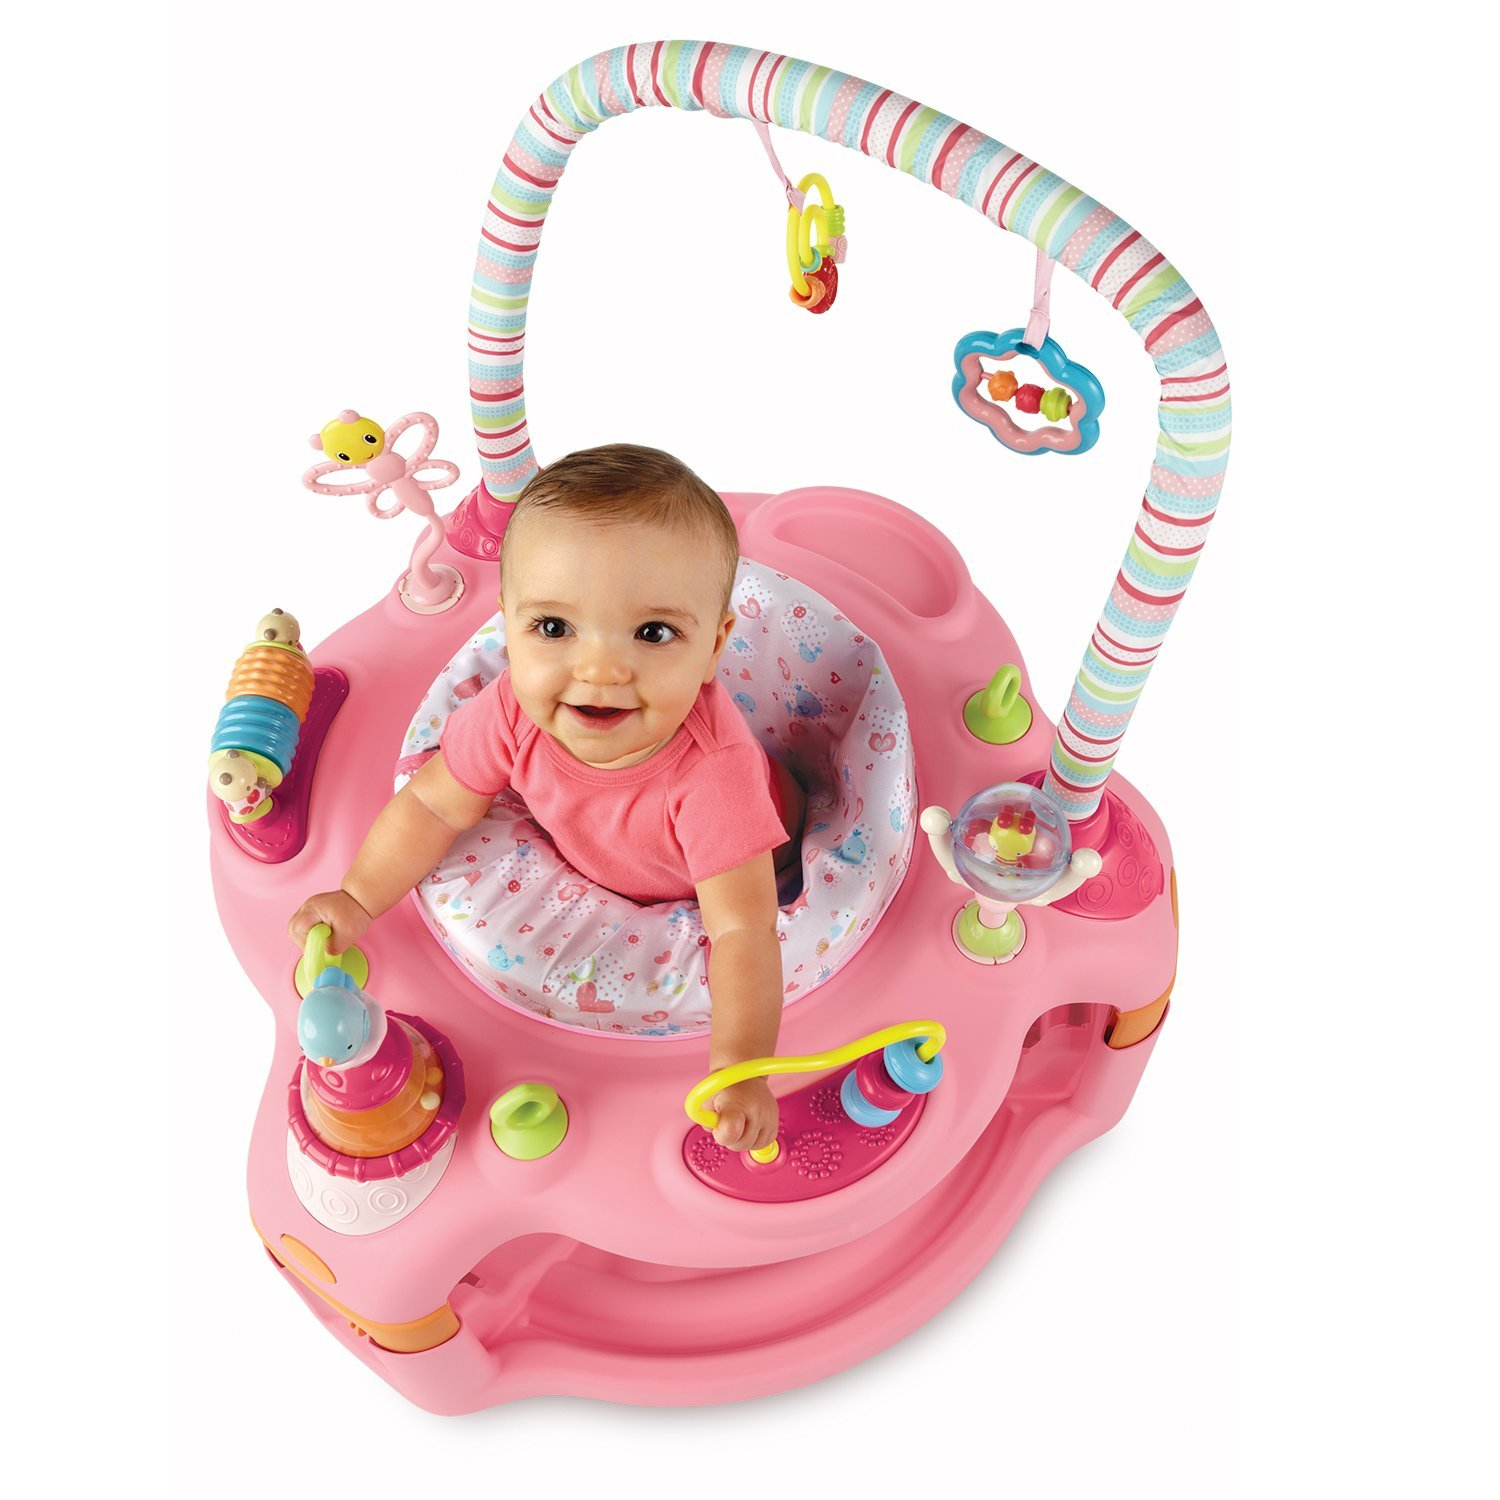 cb83f98a5161 Isabelle s New Stuff  Bright Starts Exersaucer